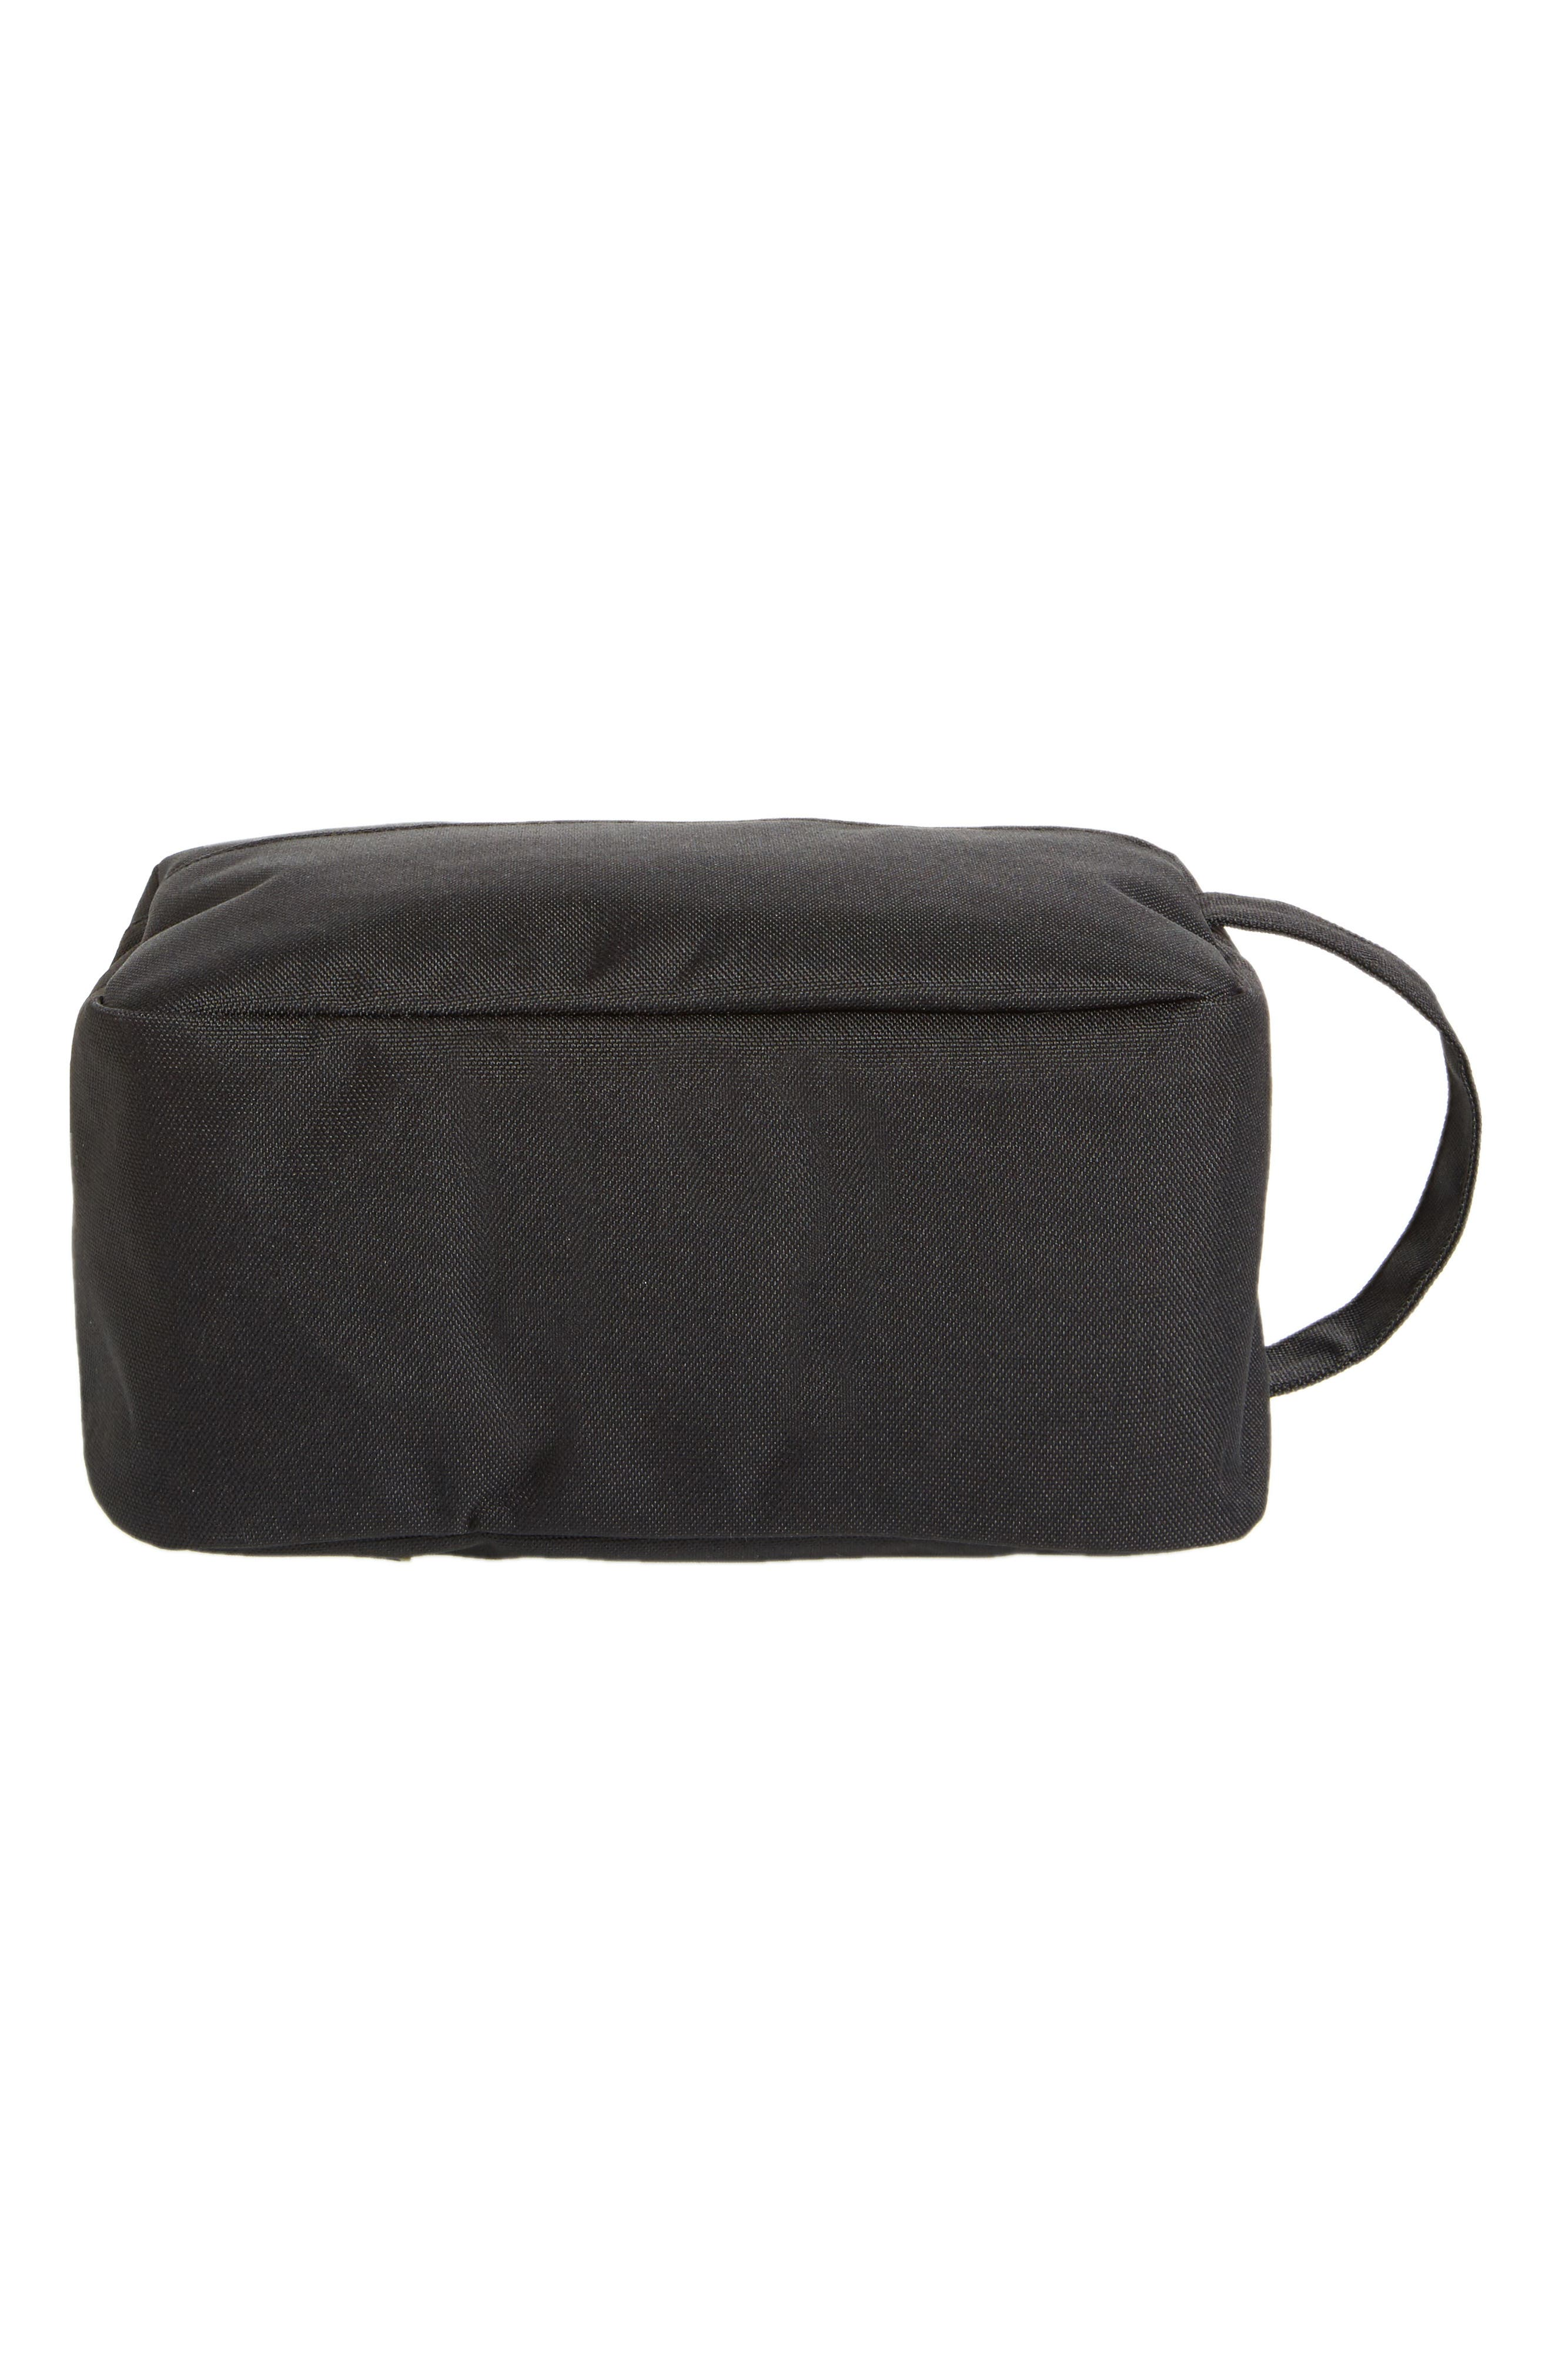 Chapter Toiletry Case,                             Alternate thumbnail 5, color,                             BLACK